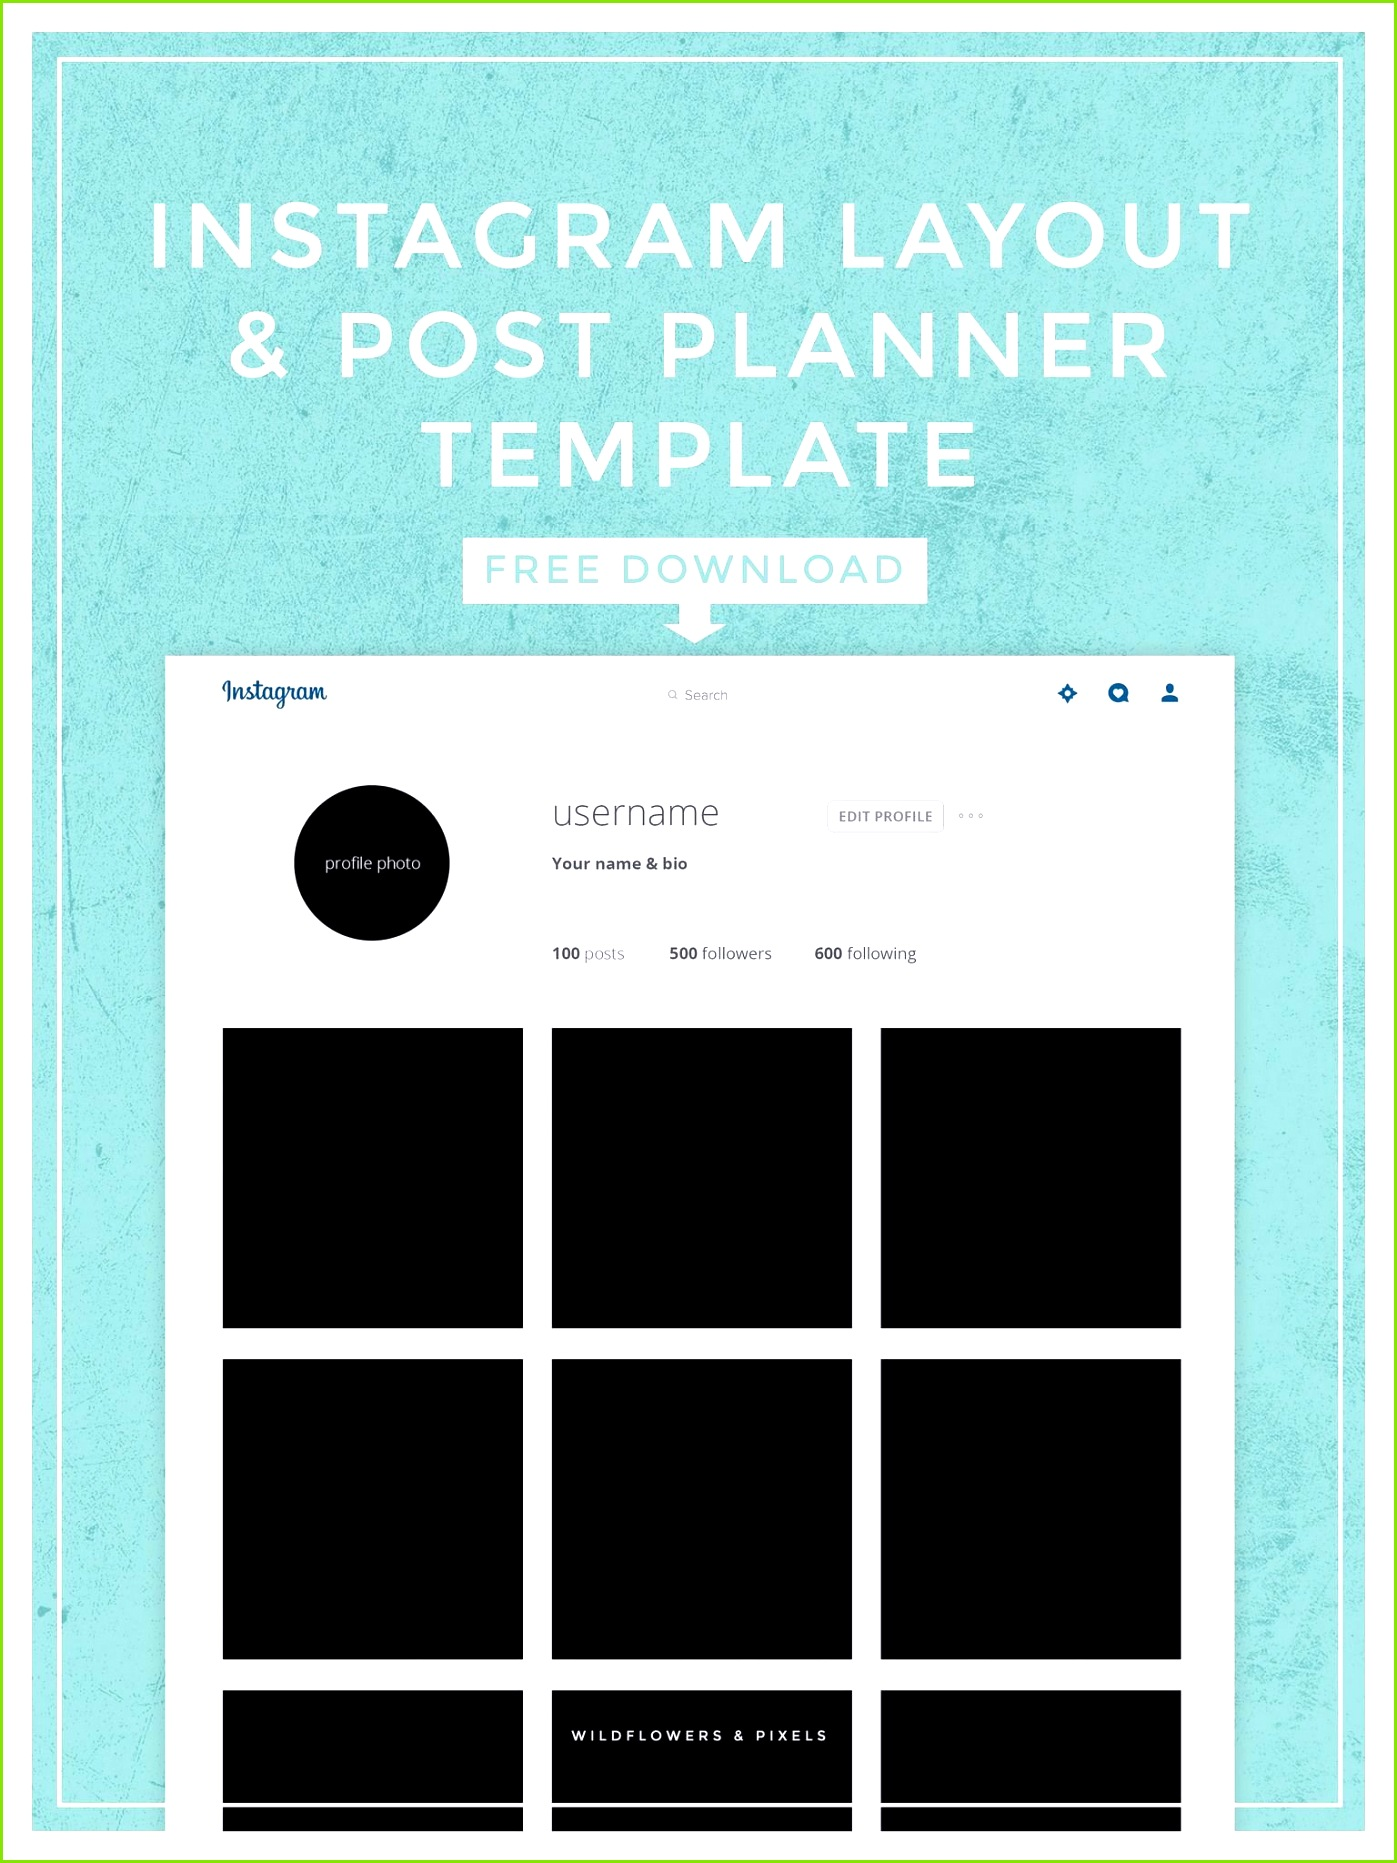 Instagram Layout & Post Planner Template Free PSD Download